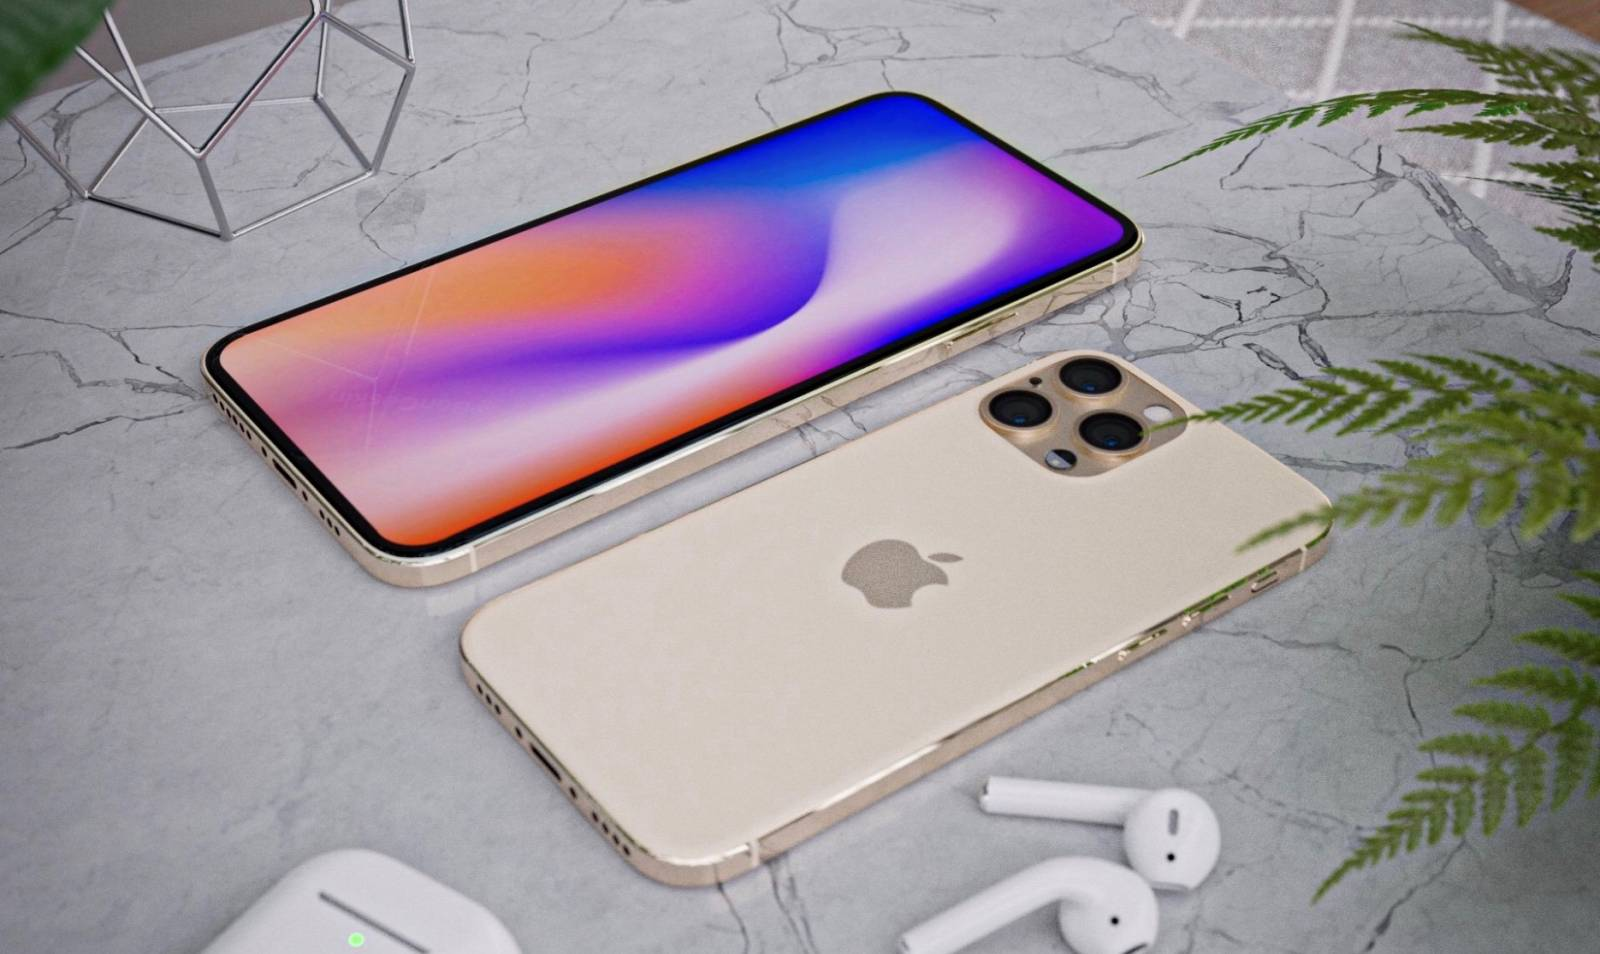 iPhone 12 Pro Max surprize